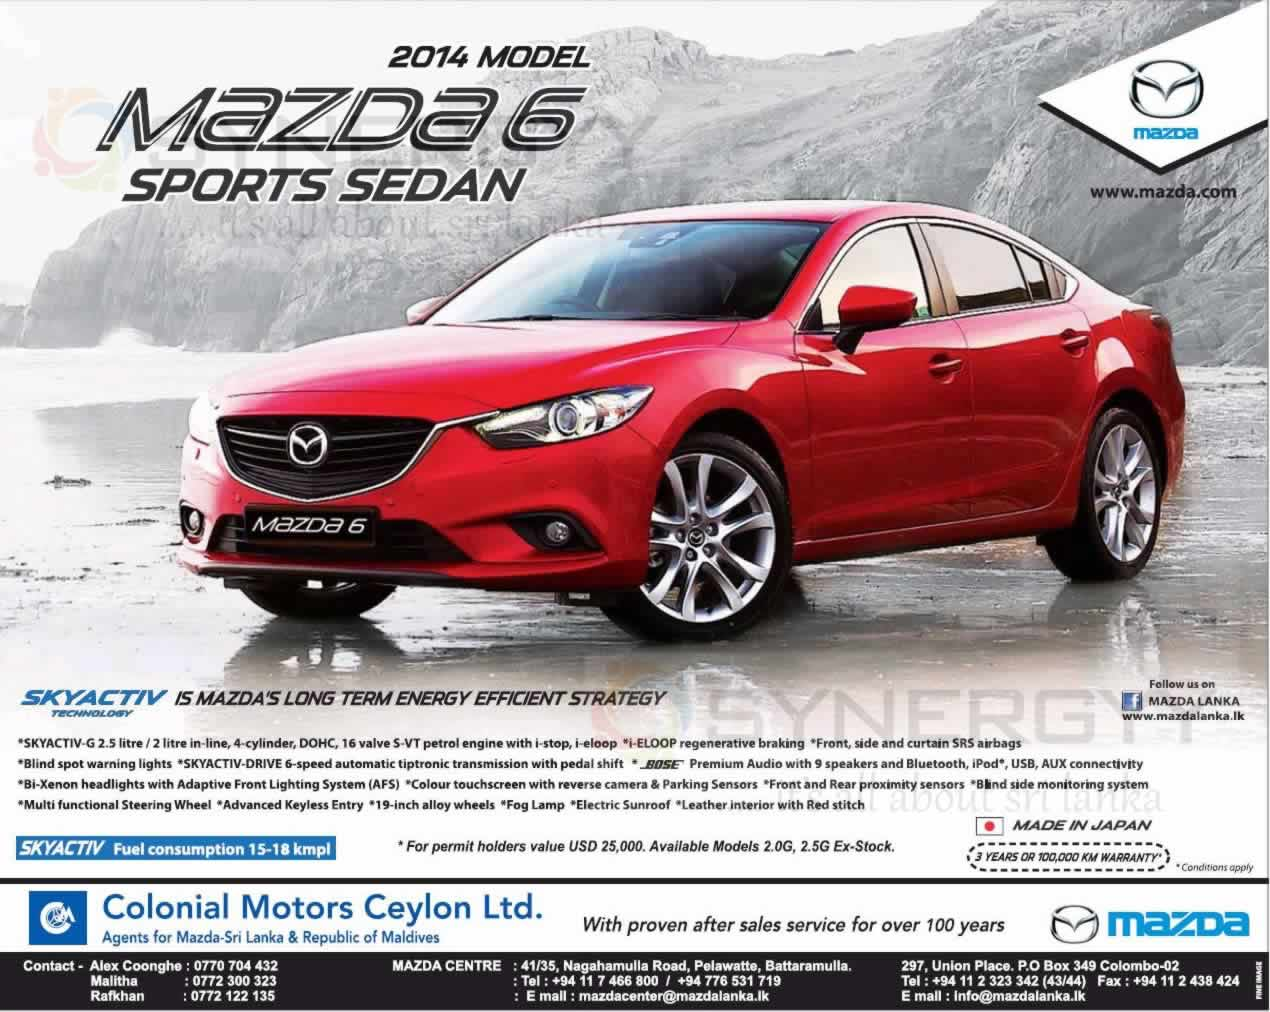 Mazda 6 2014 Model For Usd 25 000 00 For Permit Holders